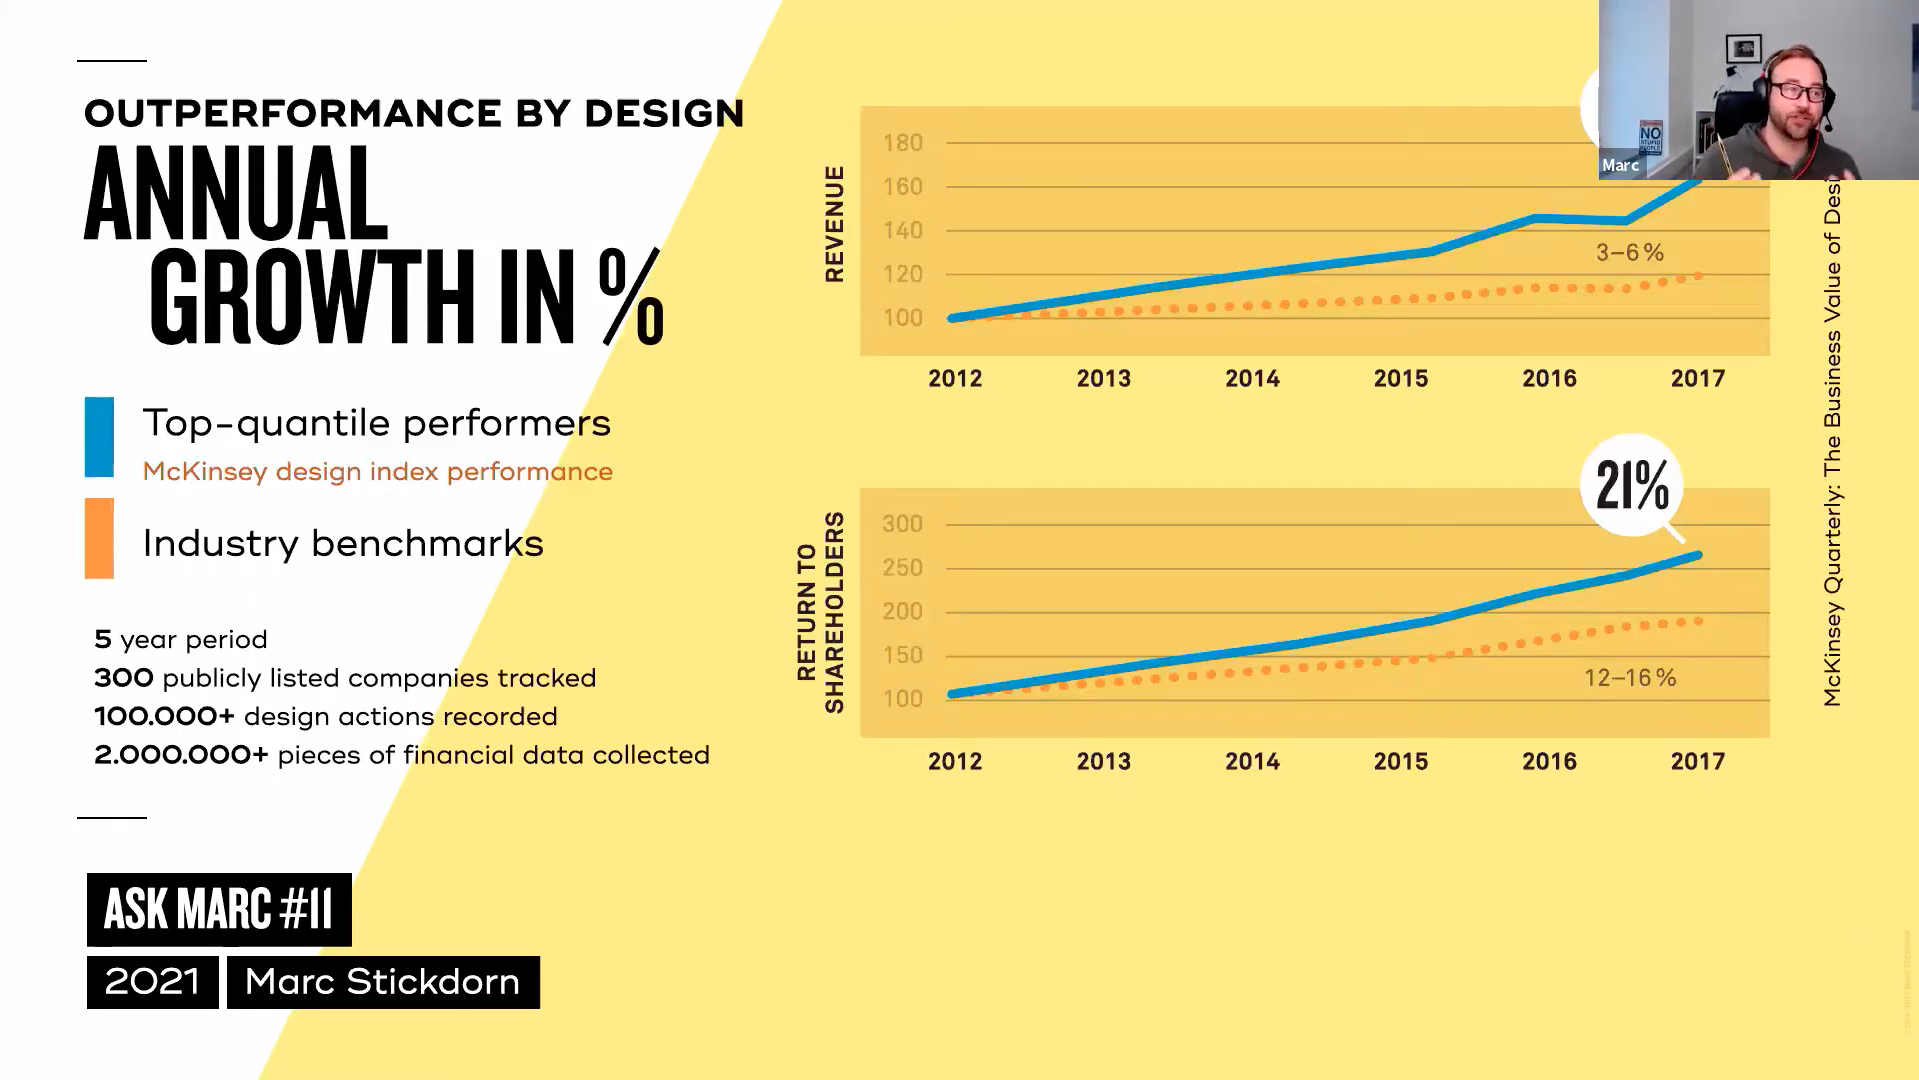 annual growth through outperformance by design